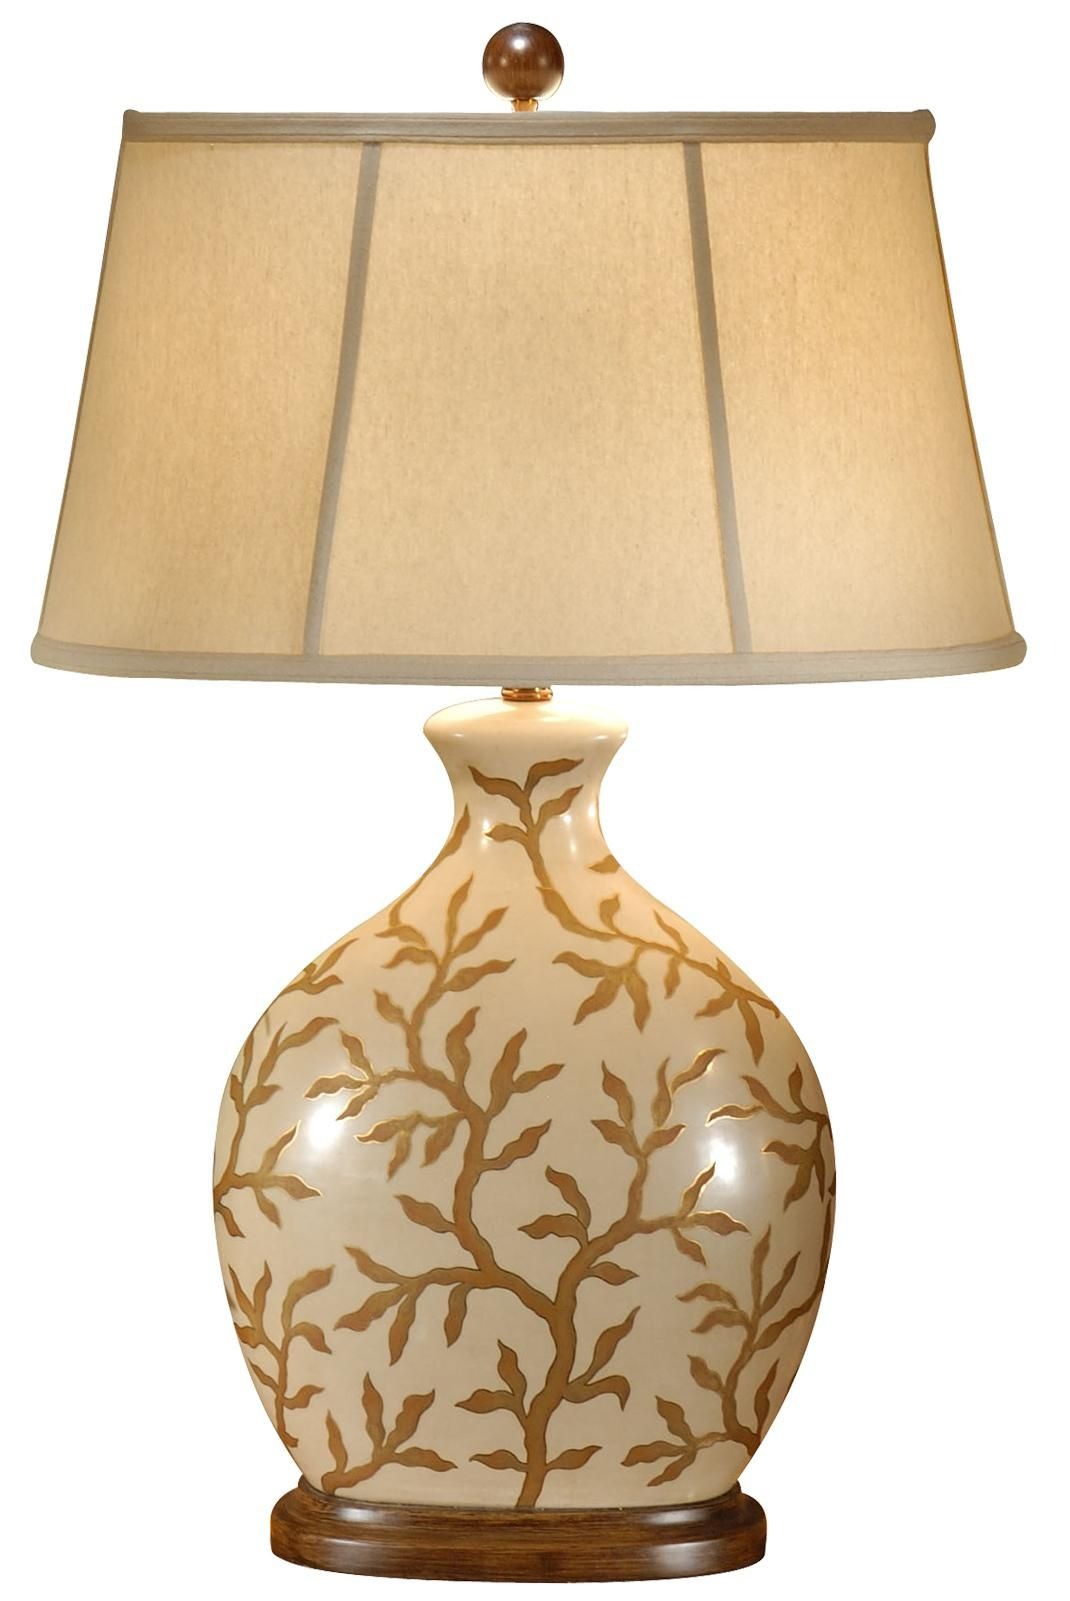 Wildwood Frantic Branches Porcelain Table Lamp P4125 Lamps Plus Lamp Table Lamp Porcelain Lamp